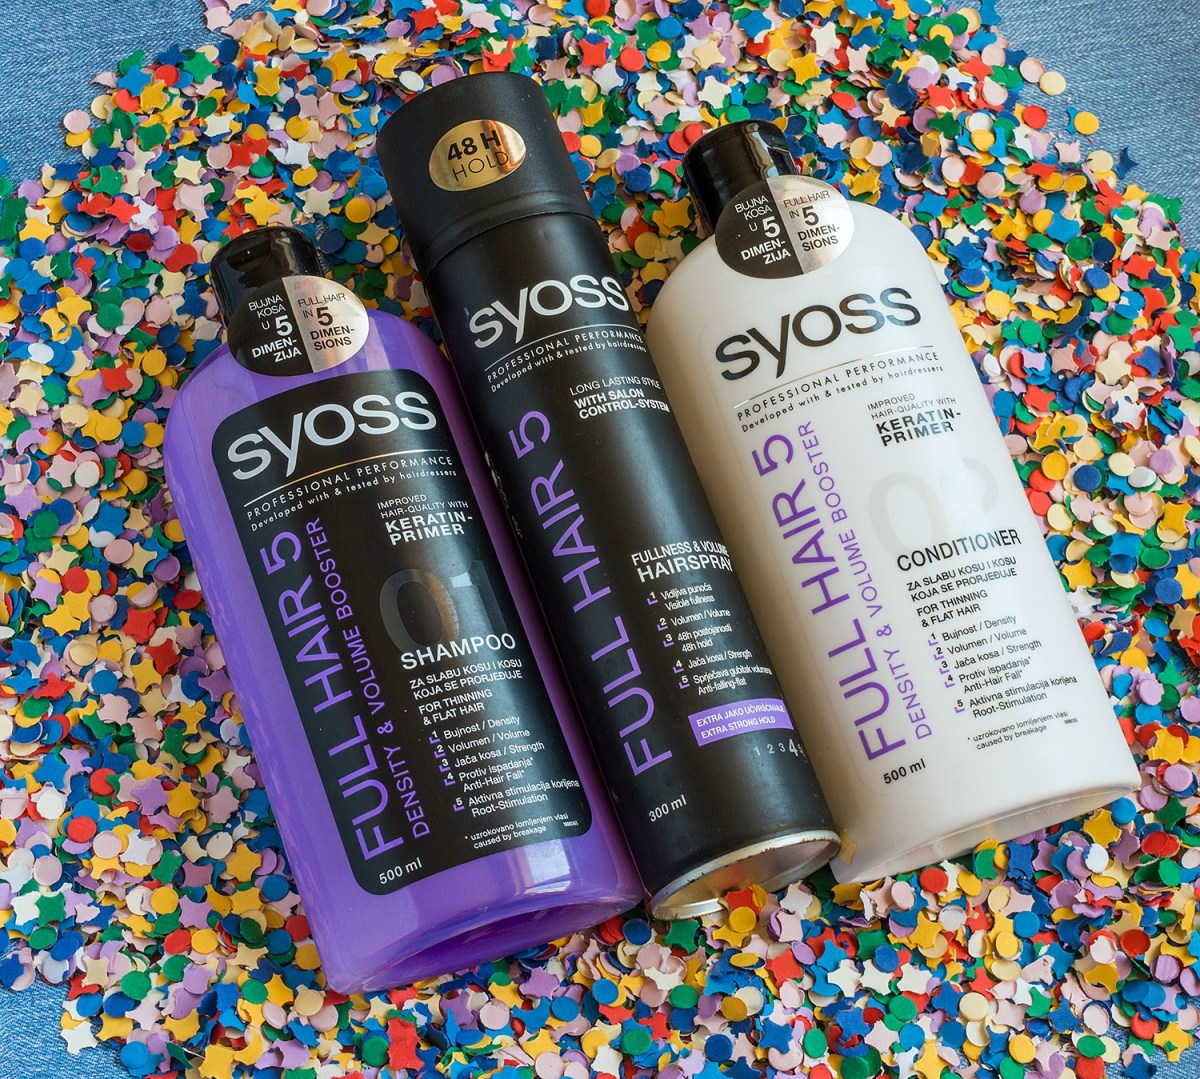 My Hair Care Routine with Syoss Full Hair 5